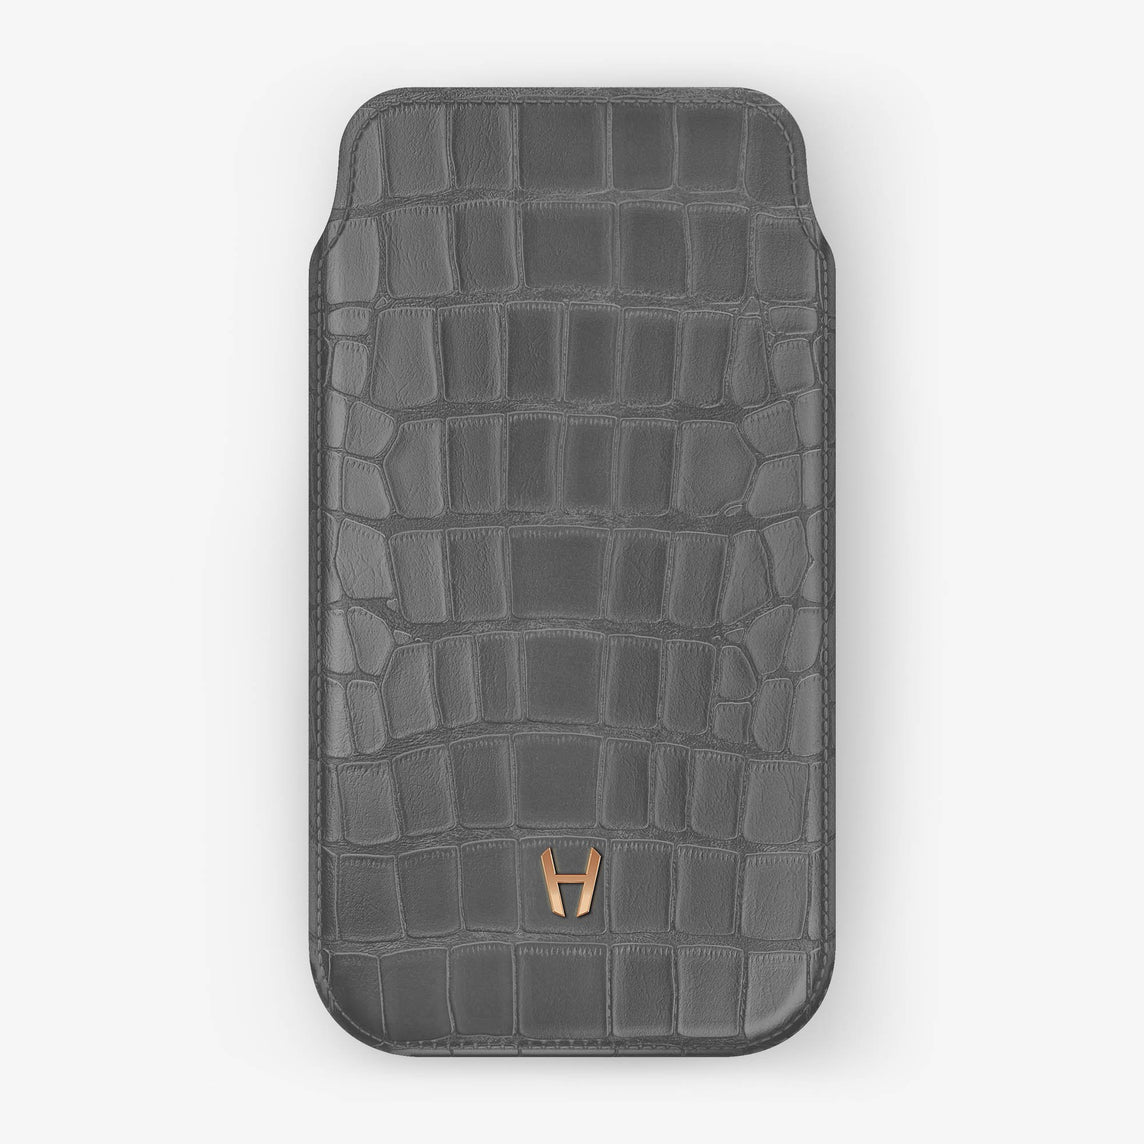 Alligator [iPhone Sleeve Case] [model:iphone-xs-case] [colour:light-grey] [finishing:rose-gold]